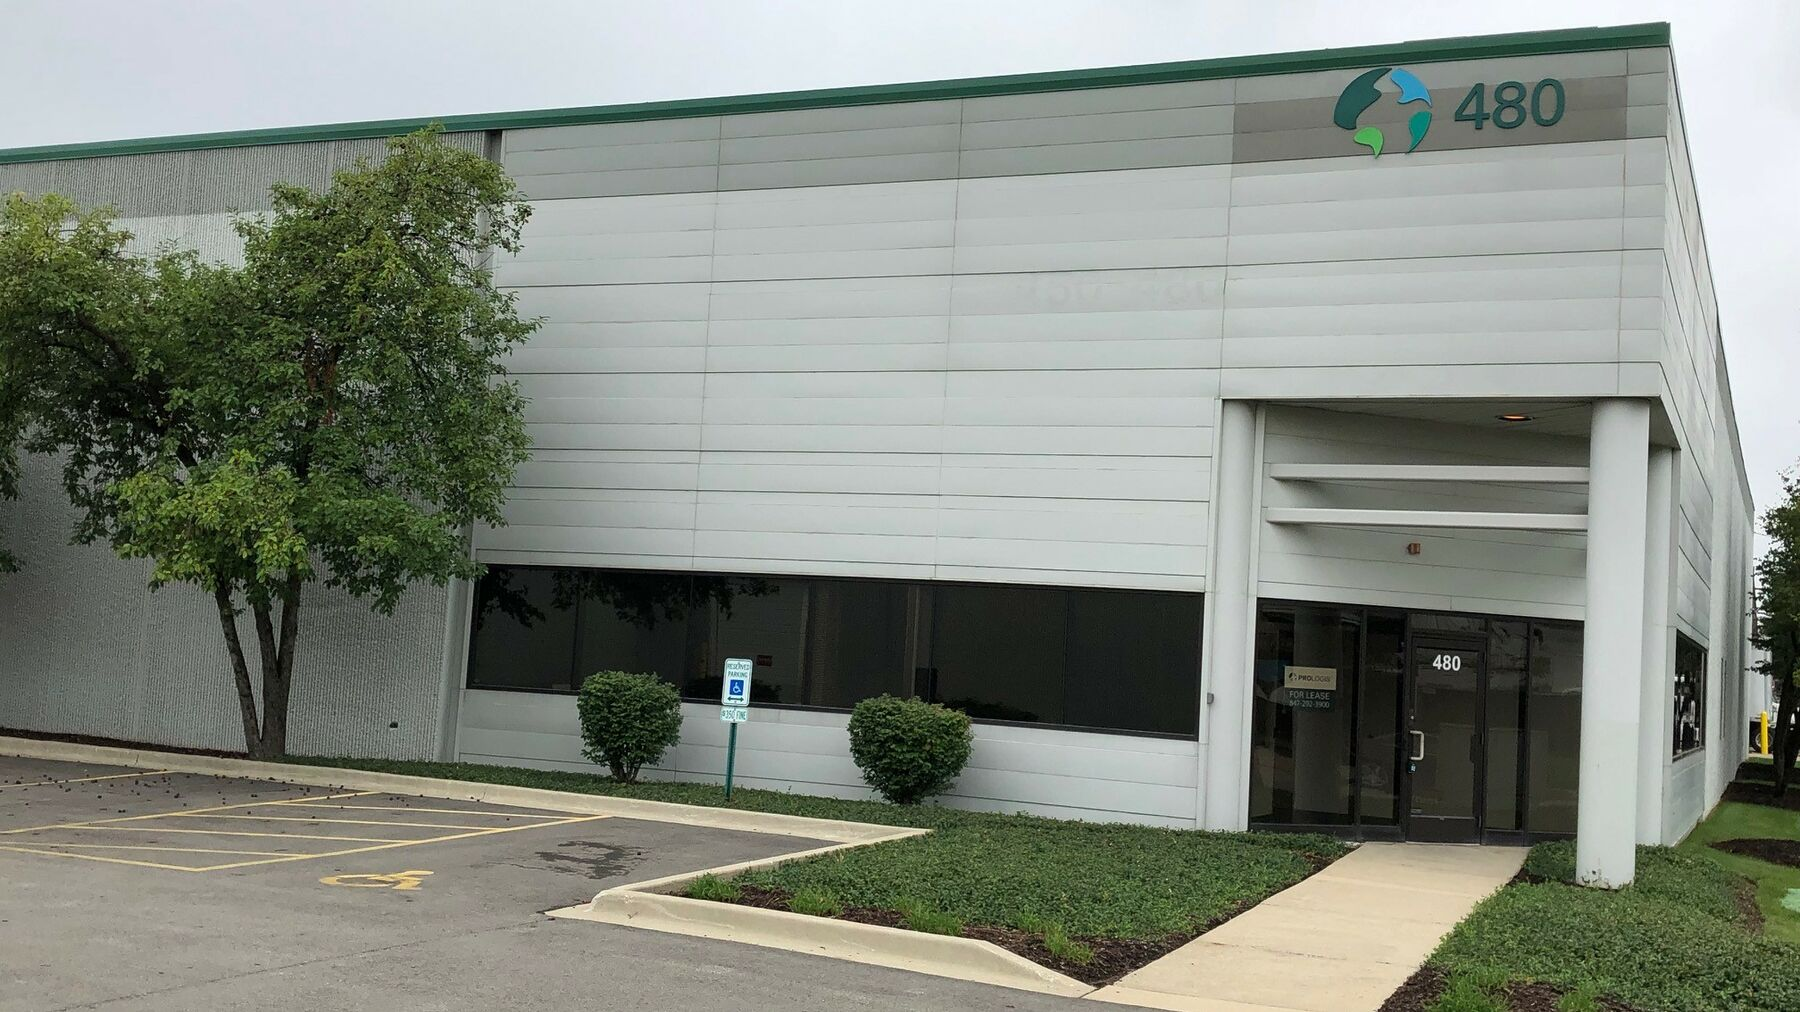 DPM-Prologis-Bensenville-480-York-Rd_Bldg-Image.jpg